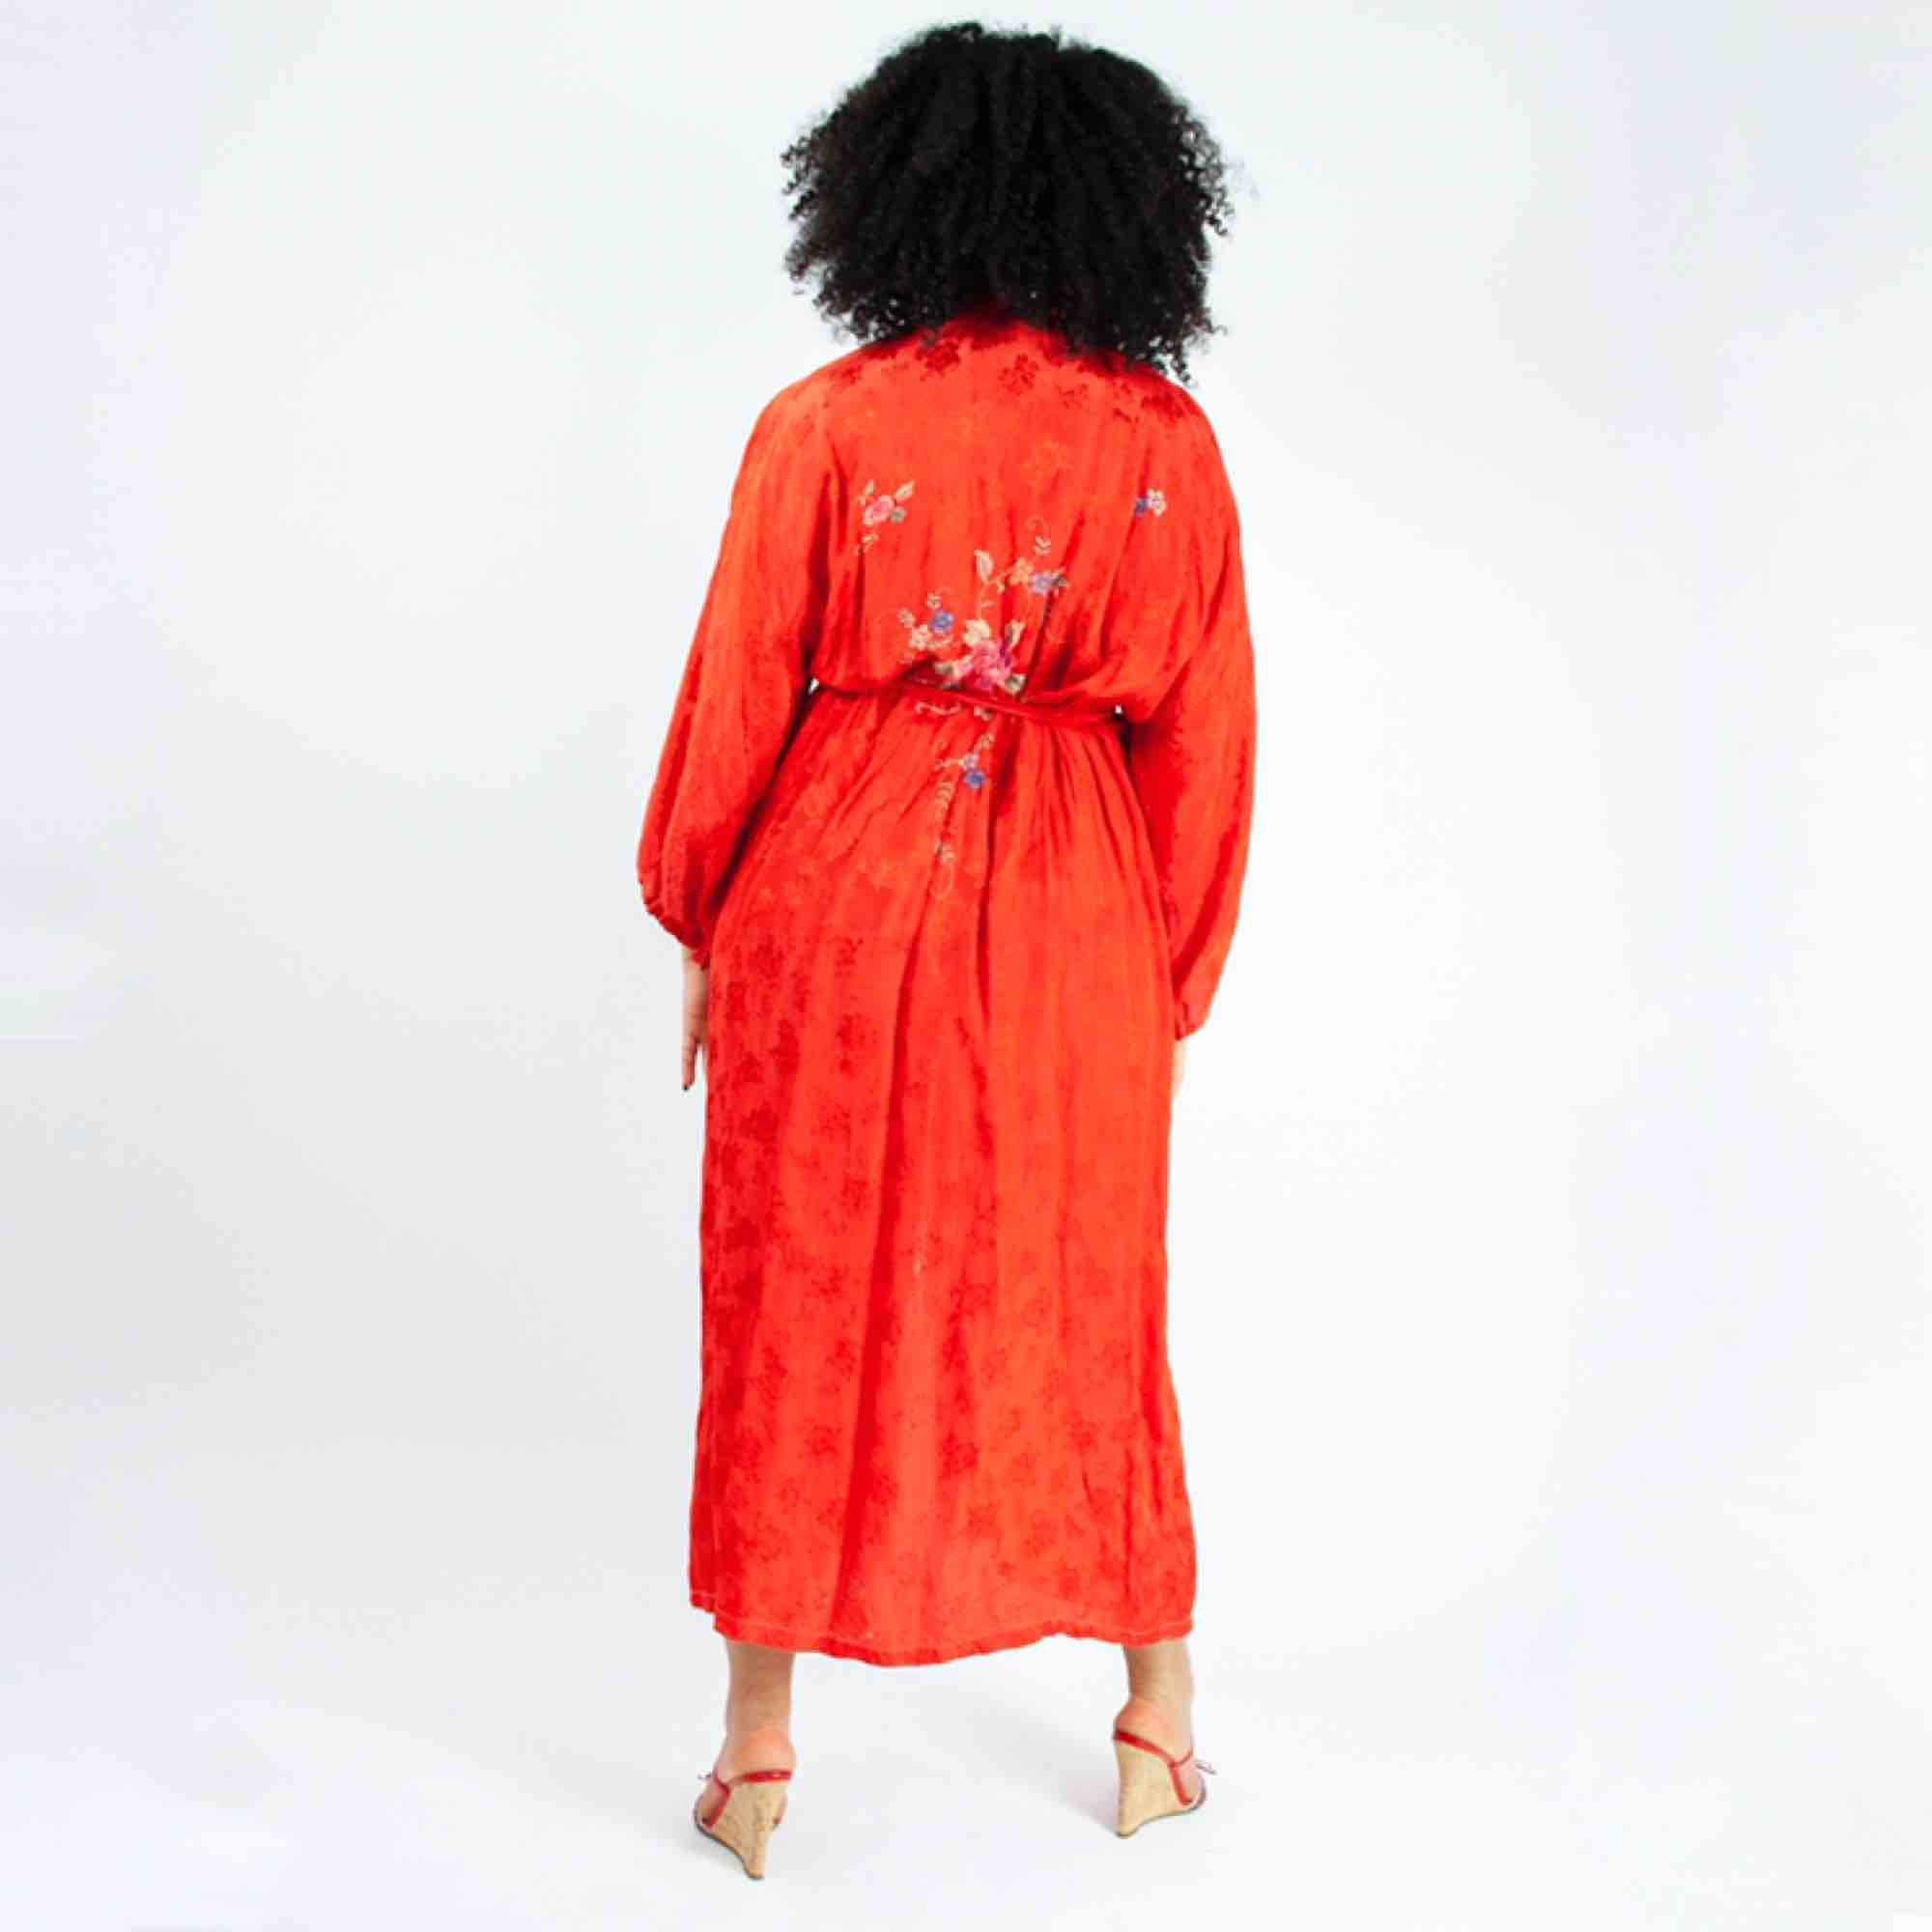 Vintage 70s jacquard embroidered morning robe in red Some signs of wear Label missing, fits best XS-M Measurements (flat): length: ca 129 pit to pit: 66 Free shipping! Read the full description at our website majorunit.com No returns. Klänningar.